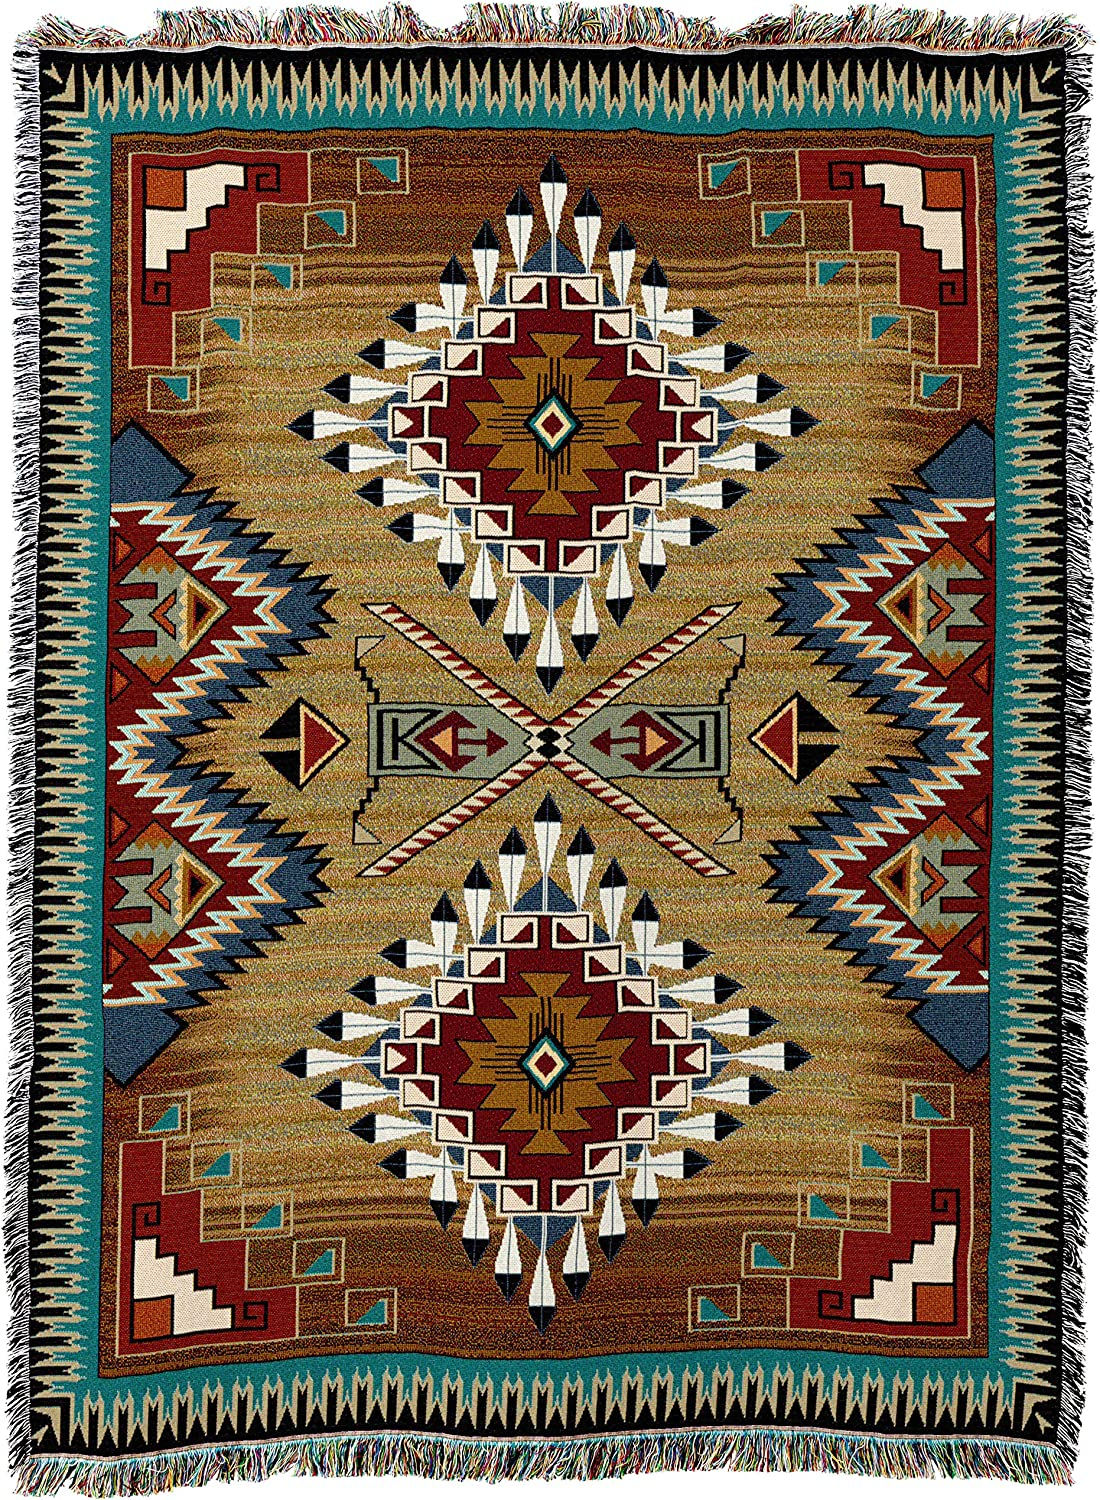 Pure Country Weavers   Brazos Southwest Blanket   Woven Tapestry Camp Throw with Fringe Cotton USA 72x54